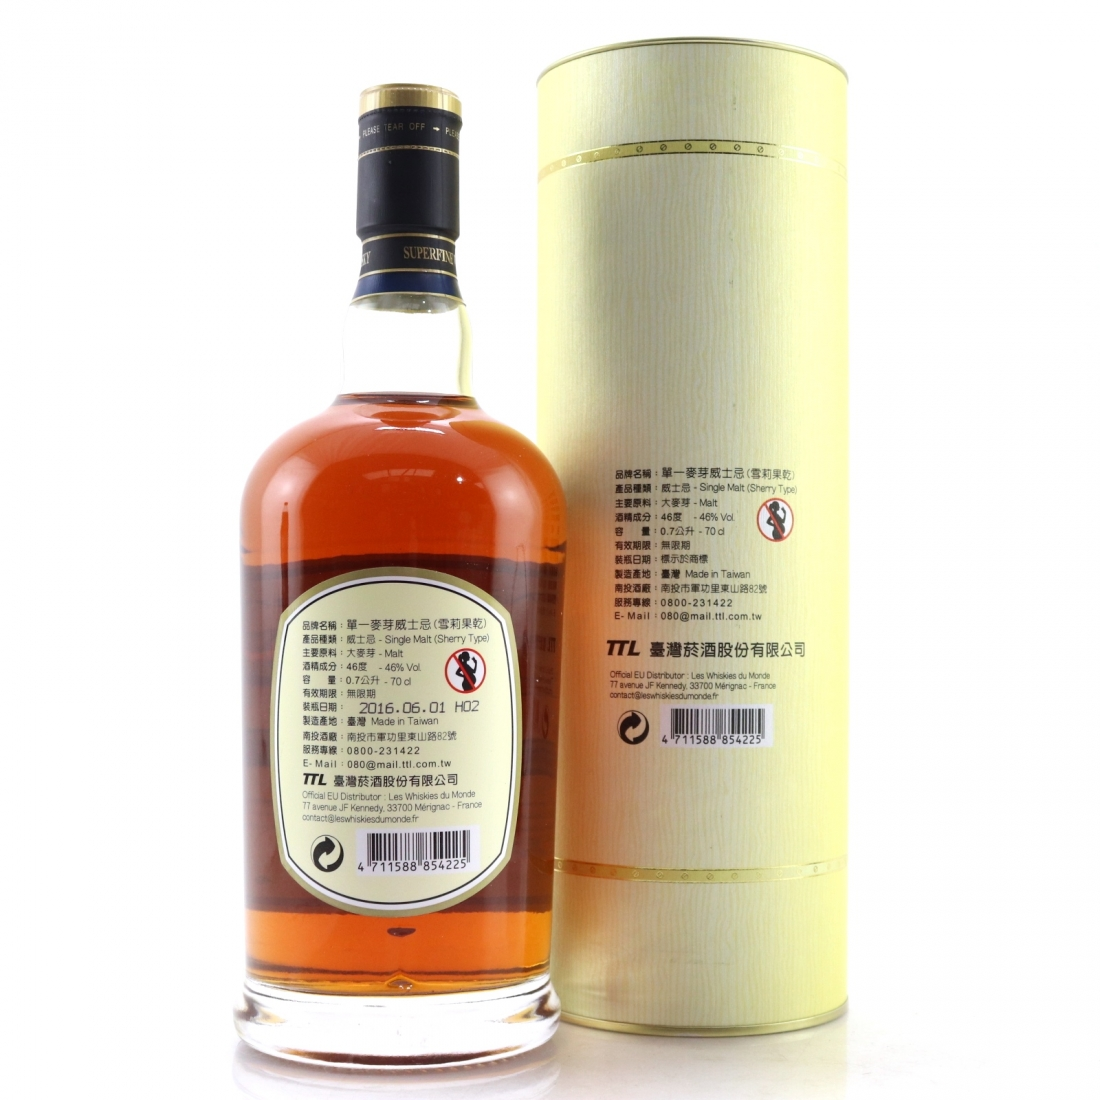 Nantou Omar Sherry Cask Single Malt